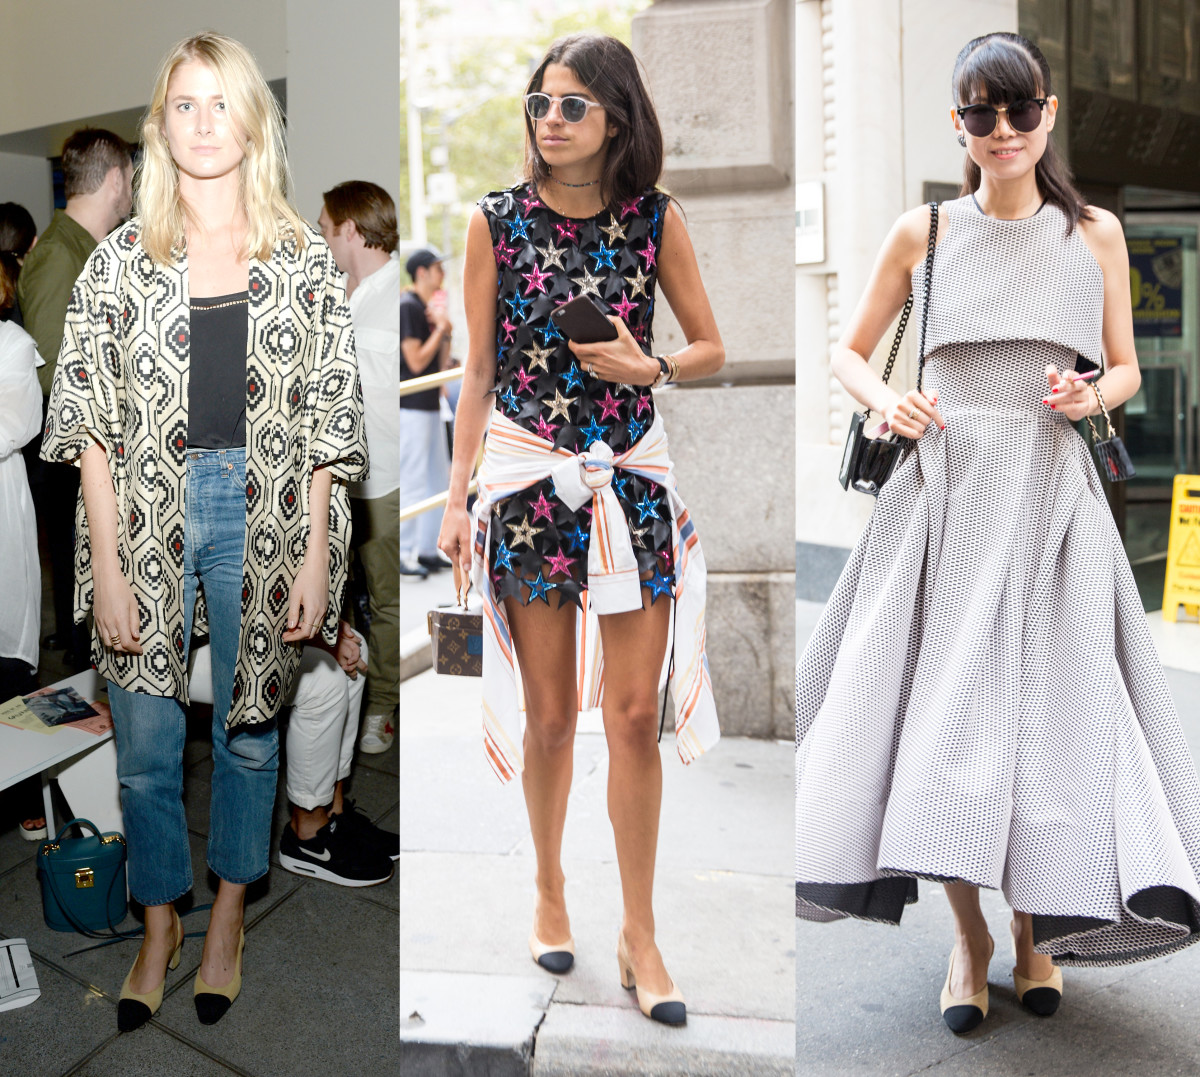 WSJ. Magazine's Laura Stoloff, The Man Repeller's Leandra Medine and a show-goer on Sunday. Photos: Ben Gabbe/Getty Images (left) and KDV/Fashionista (center and right)